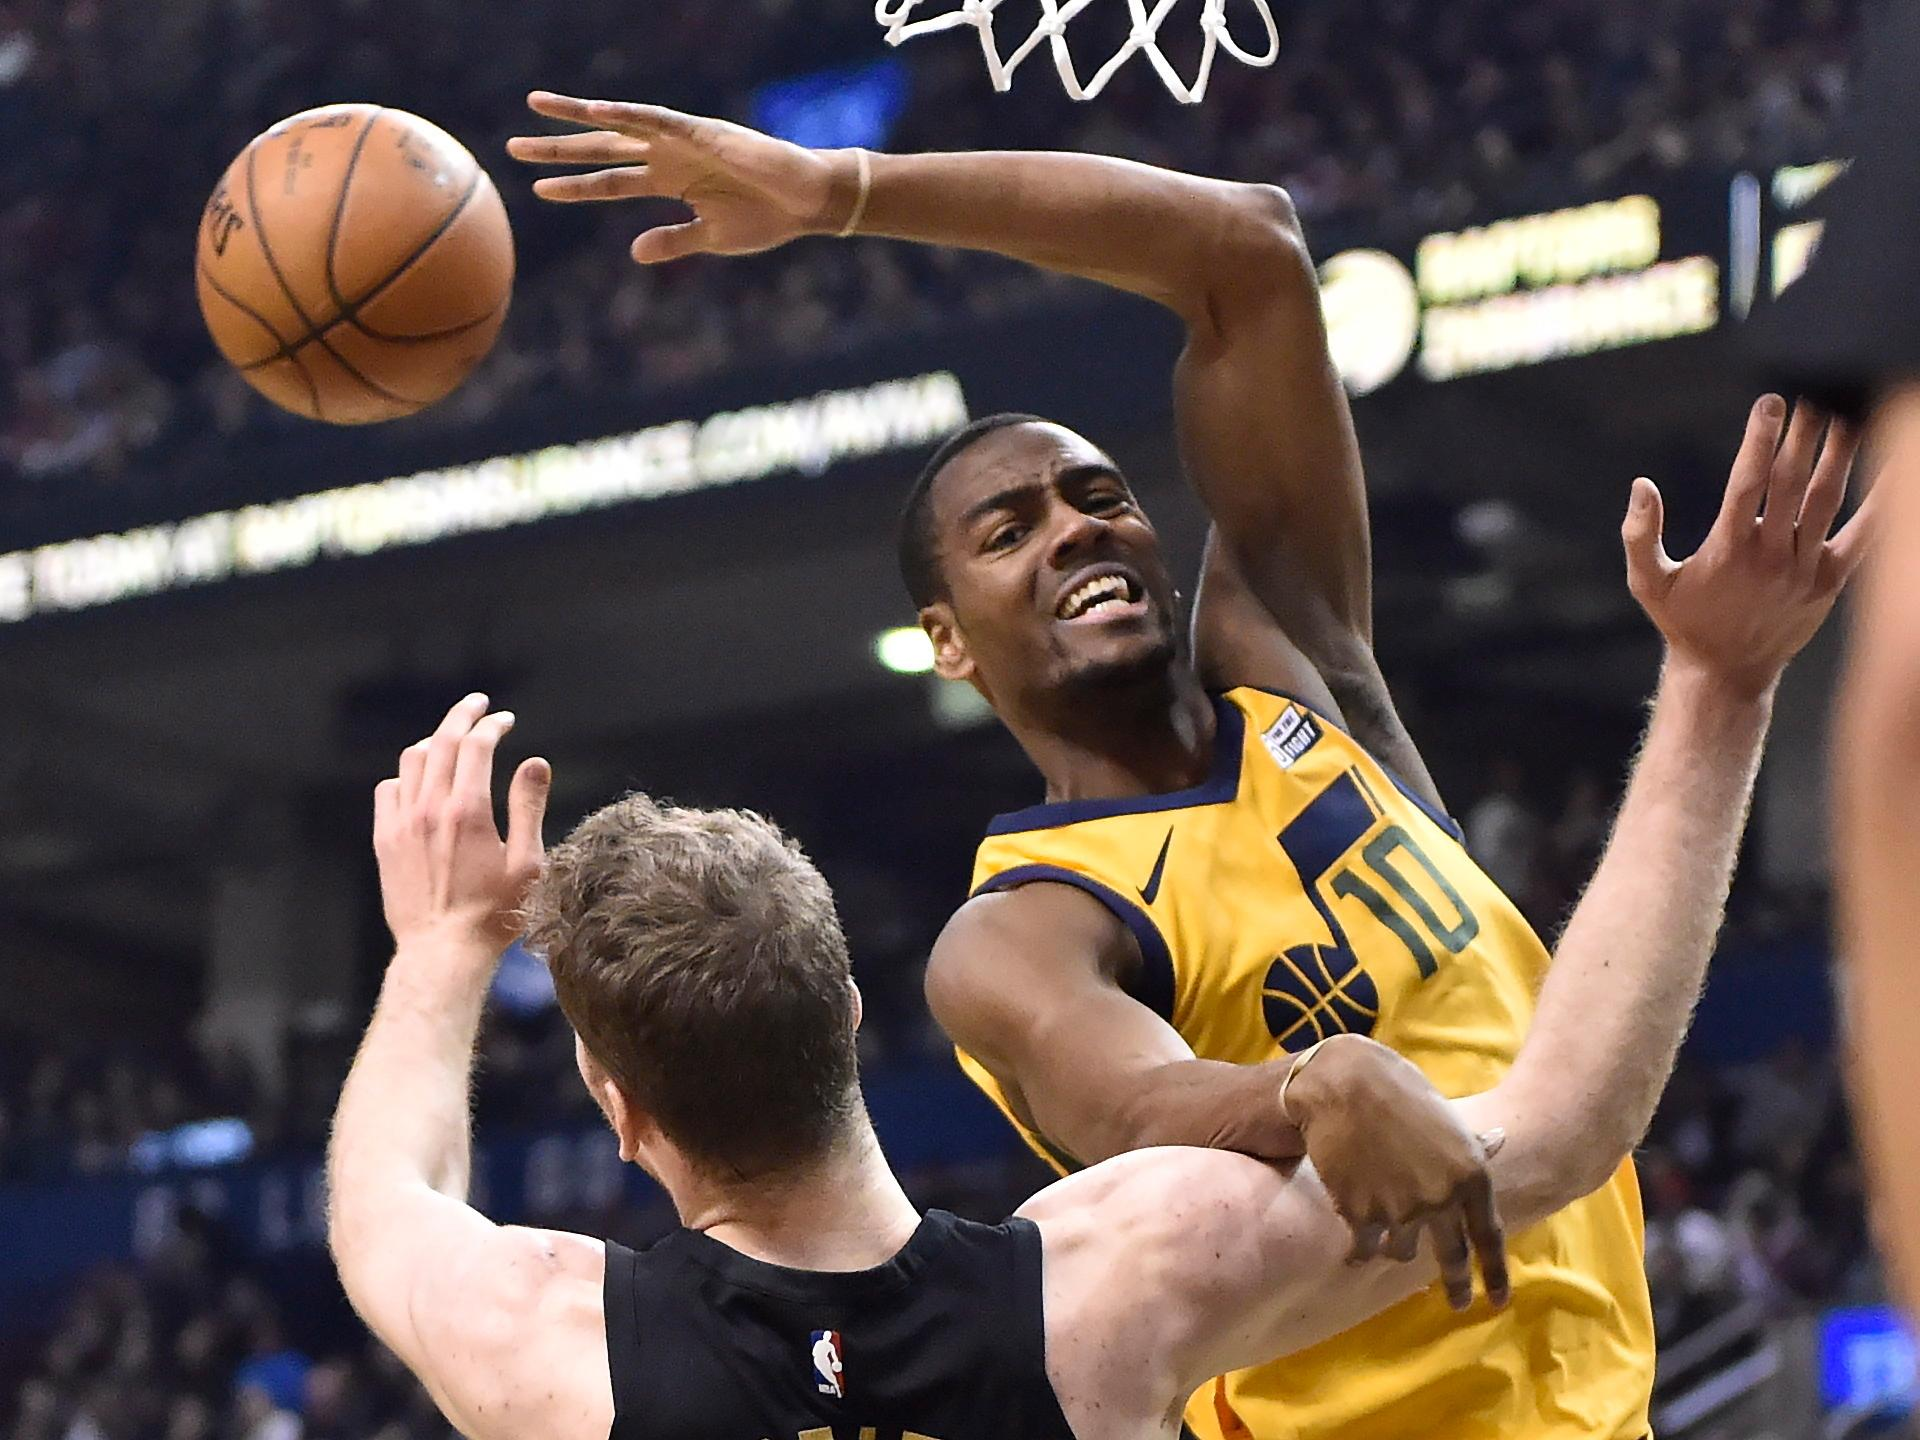 Utah Jazz guard Alec Burks (10) passes the ball as Toronto Raptors center Jakob Poeltl (42) defends during the first half of an NBA basketball game Friday, Jan. 26, 2018, in Toronto. (Frank Gunn/The Canadian Press via AP)